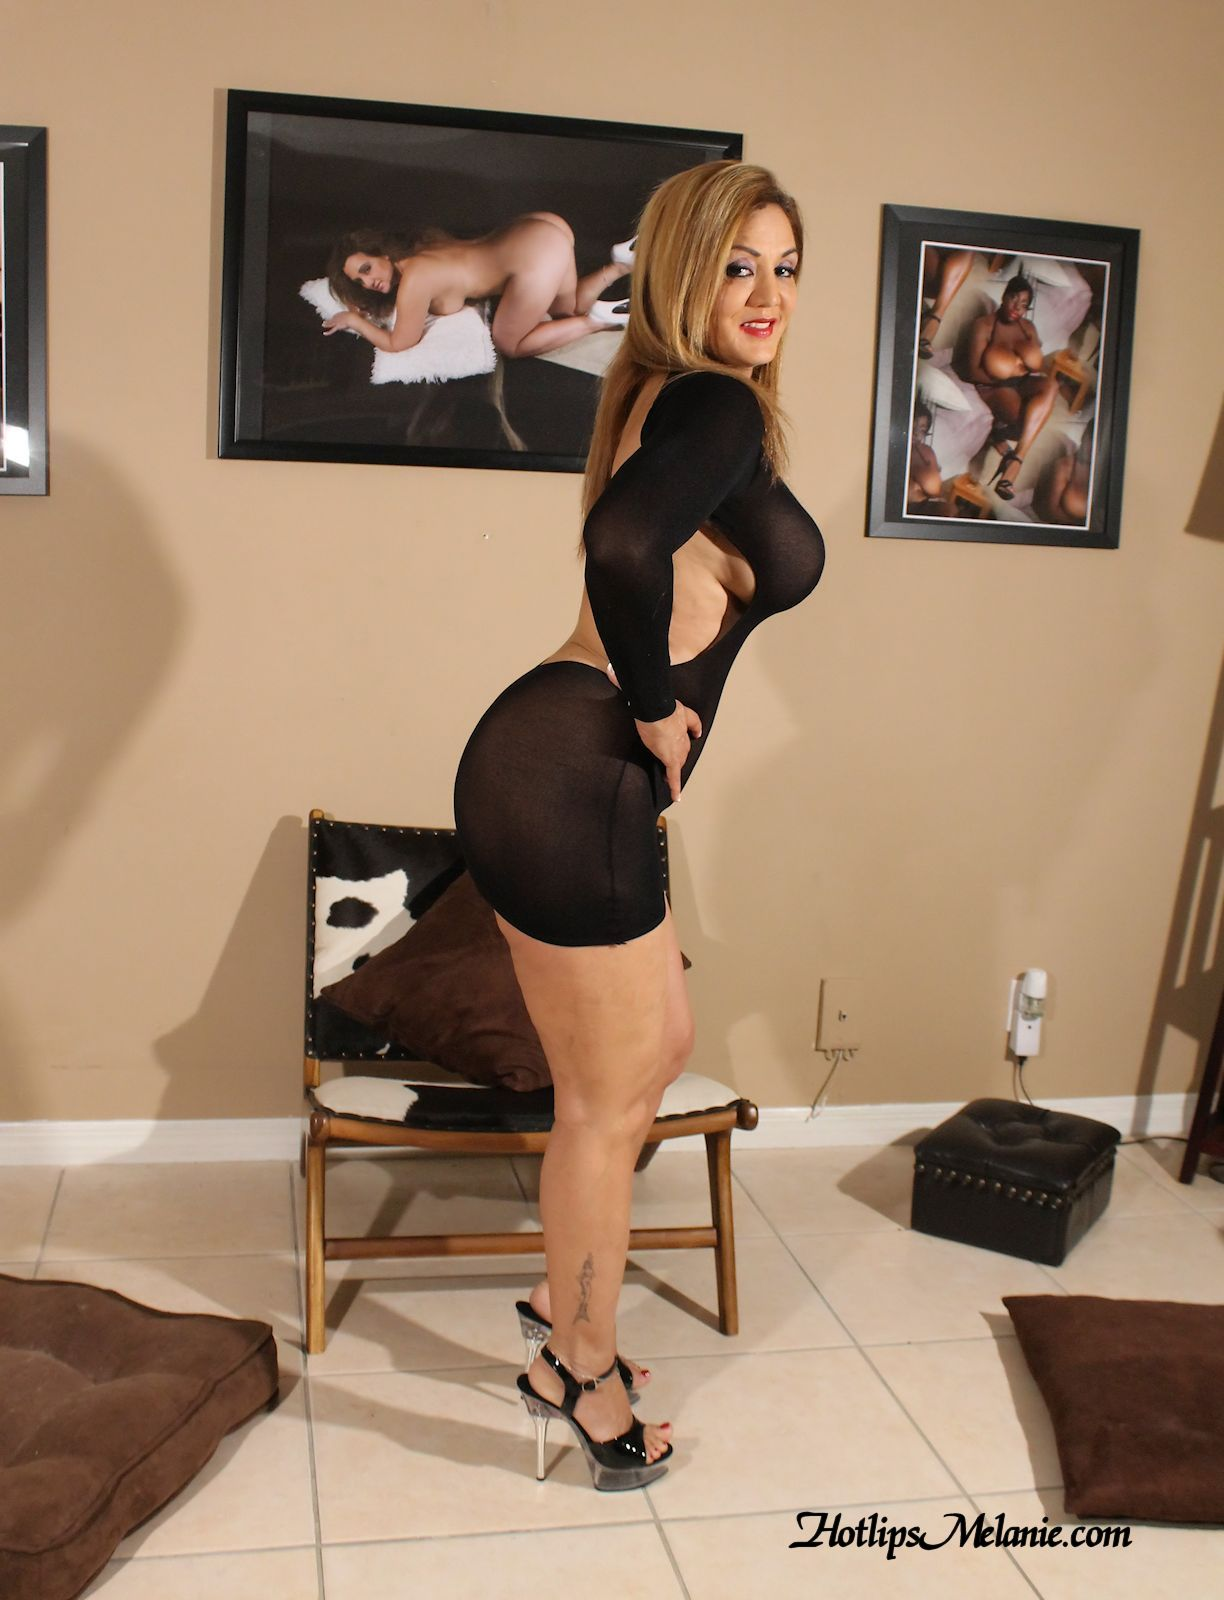 Now that Upskirt latina mom one hot